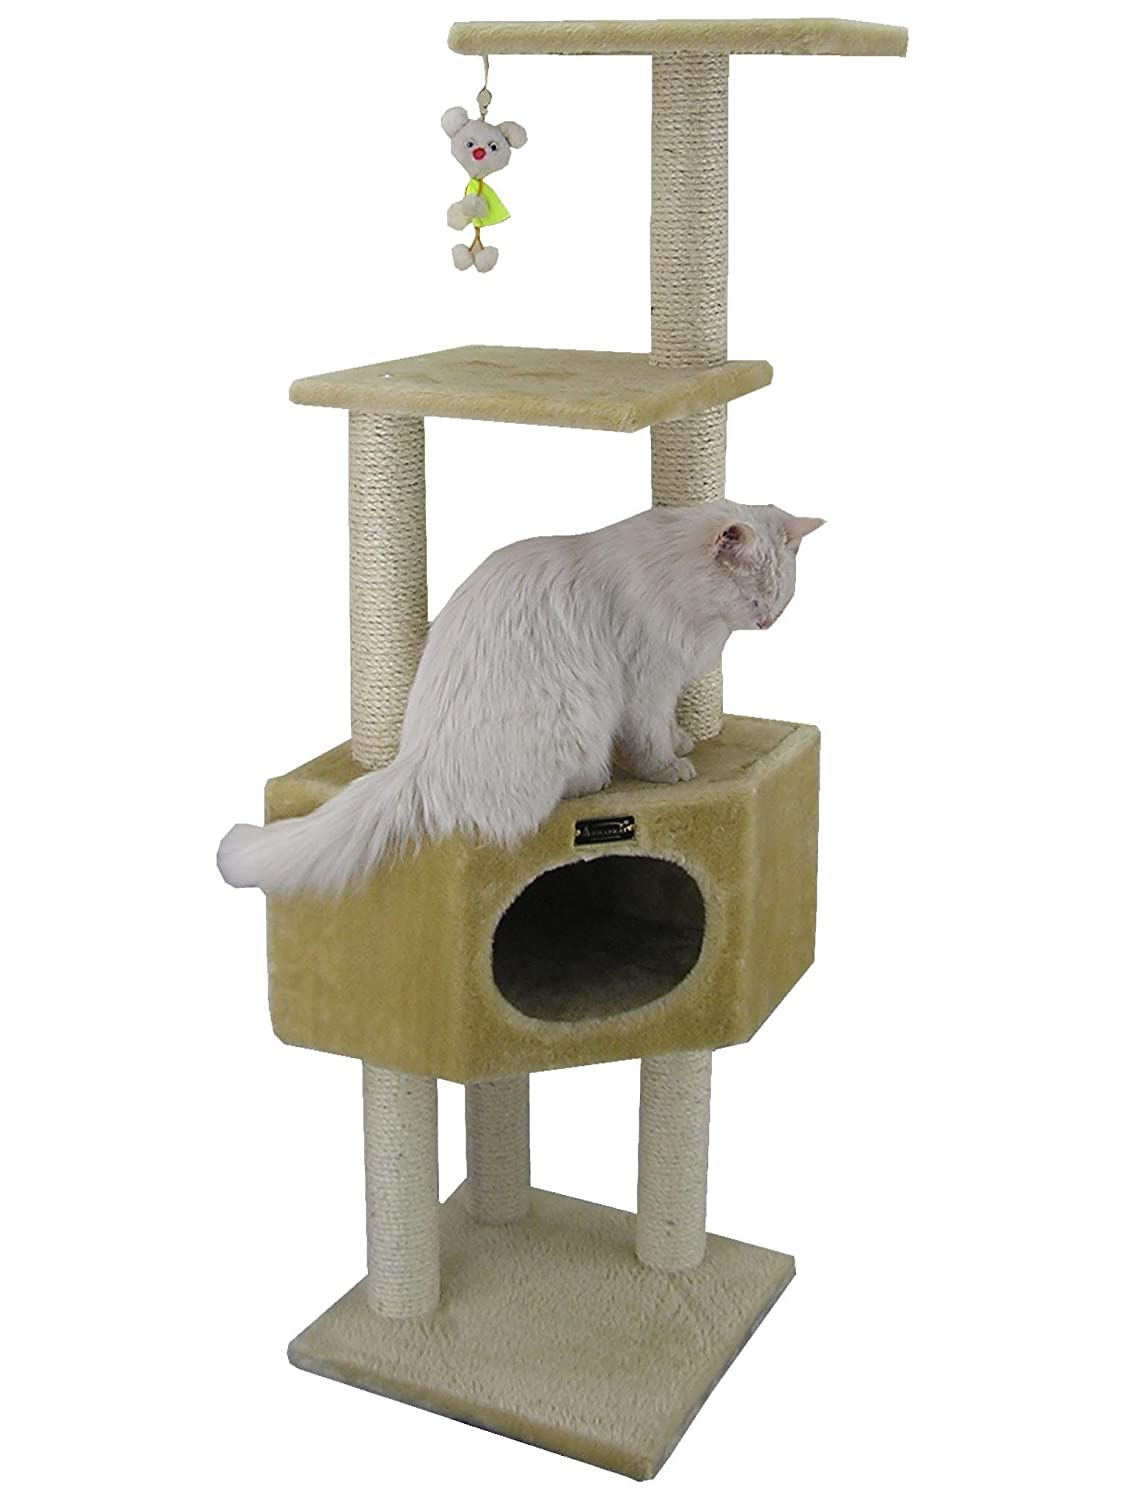 Exceptional Amazon.com : Armarkat Cat Tree Model A5201, Beige : Cat House : Pet Supplies